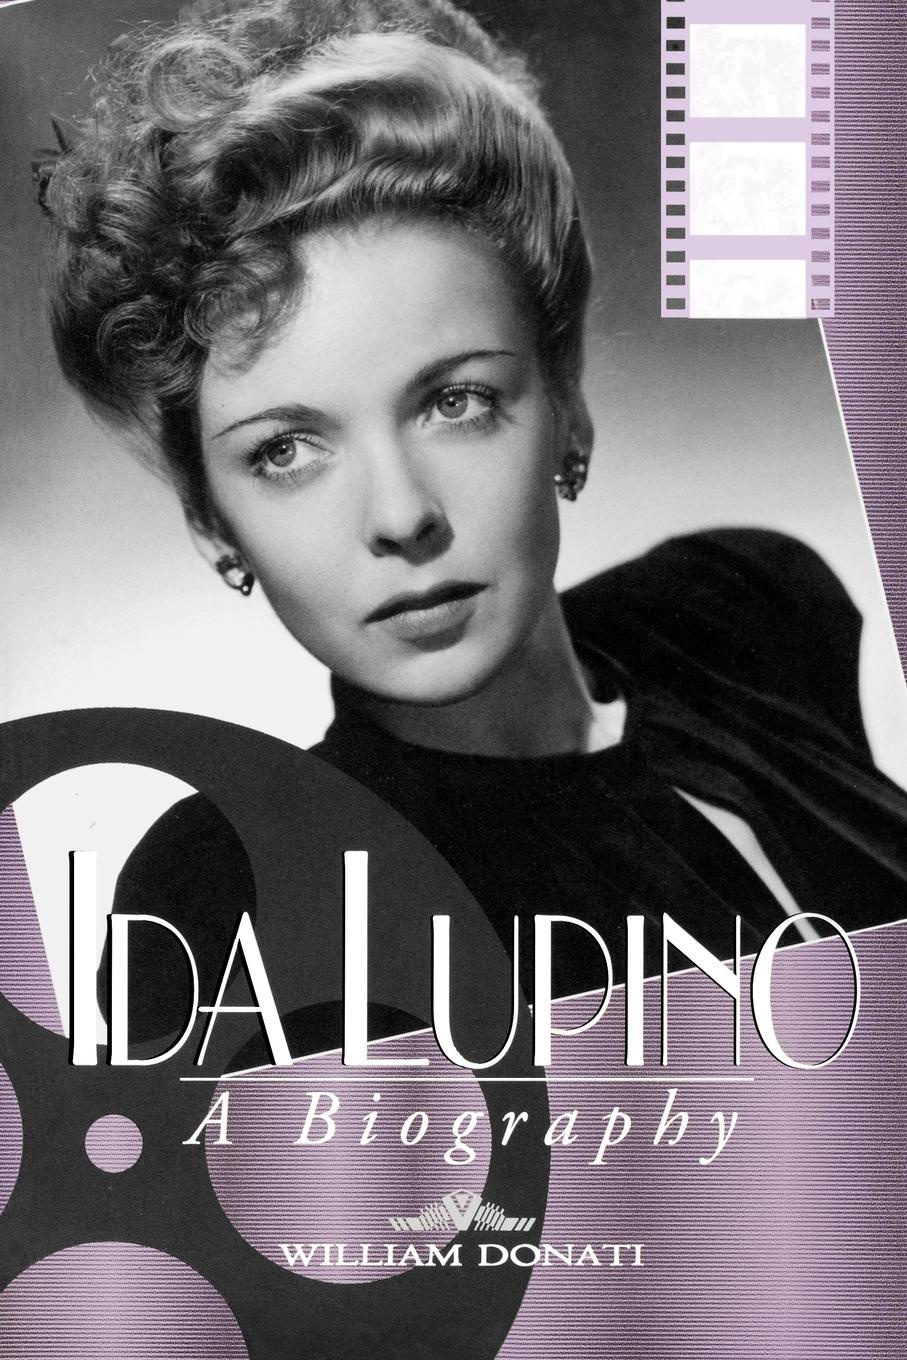 William Donati Ida Lupino. A Biography